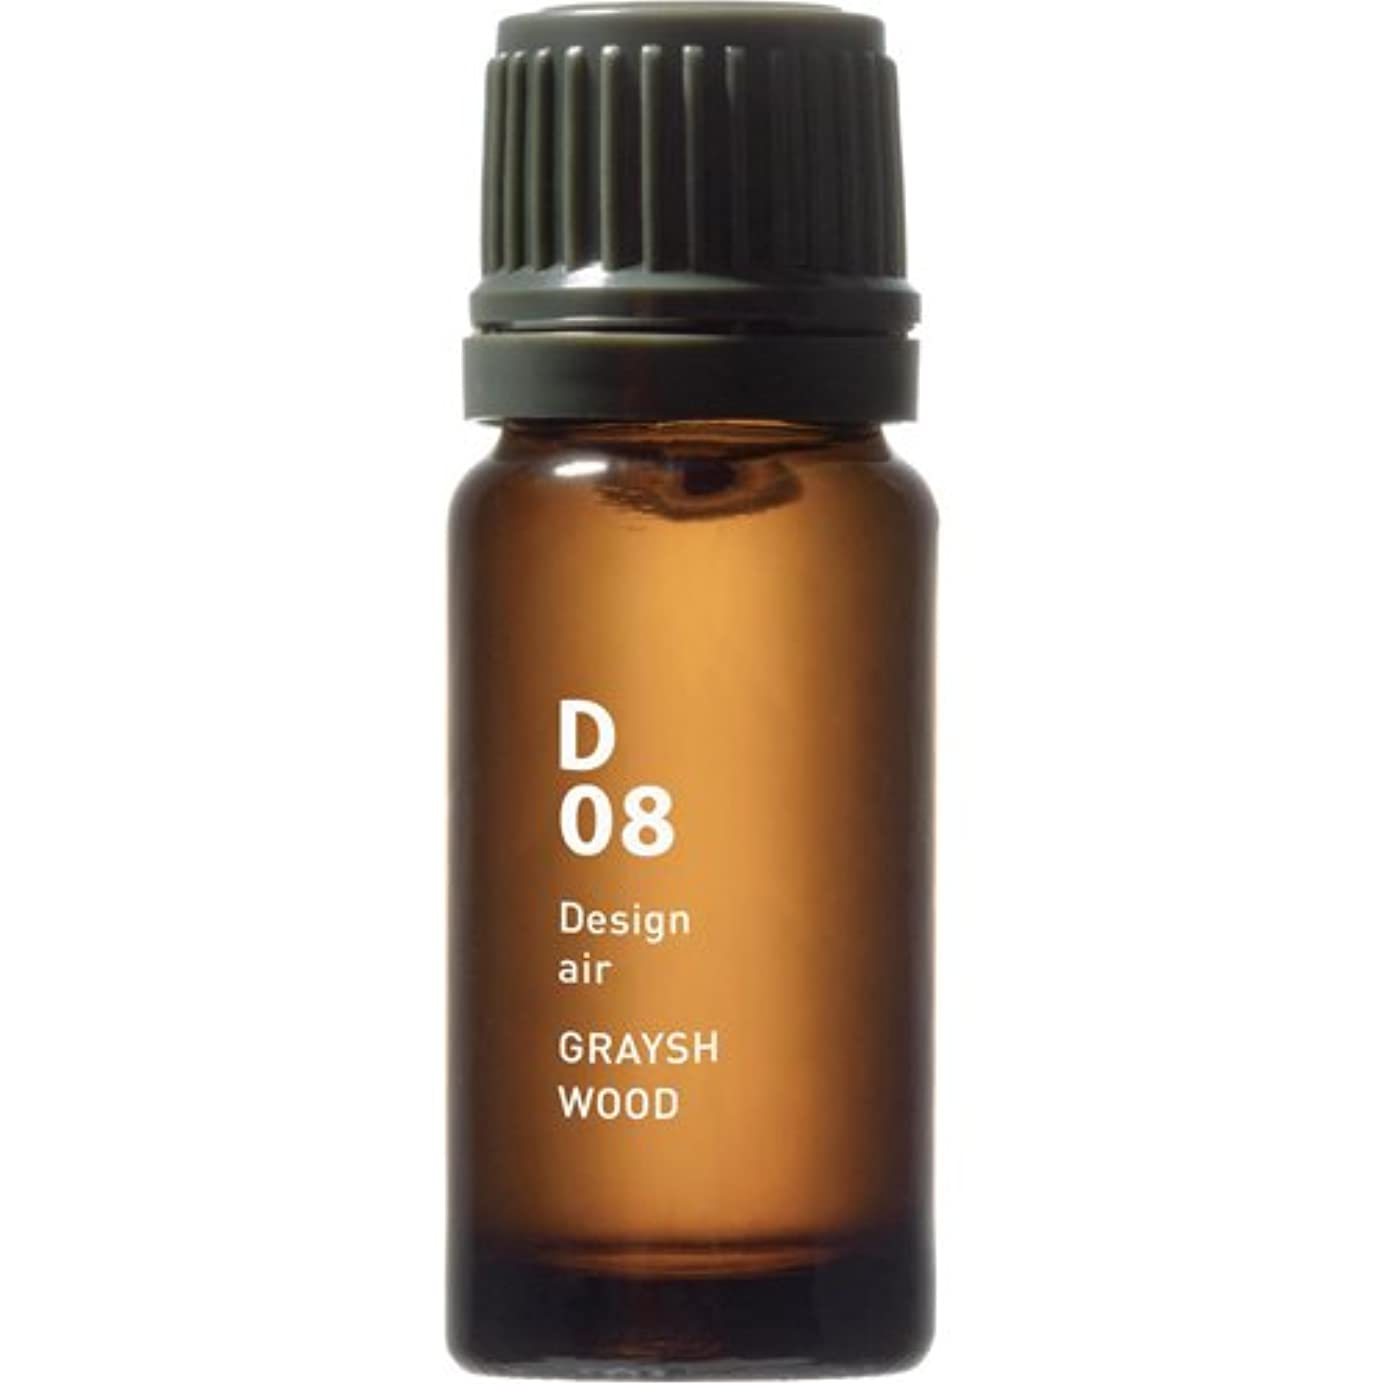 不安オールお互いD08 GRAYISH WOOD Design air 10ml